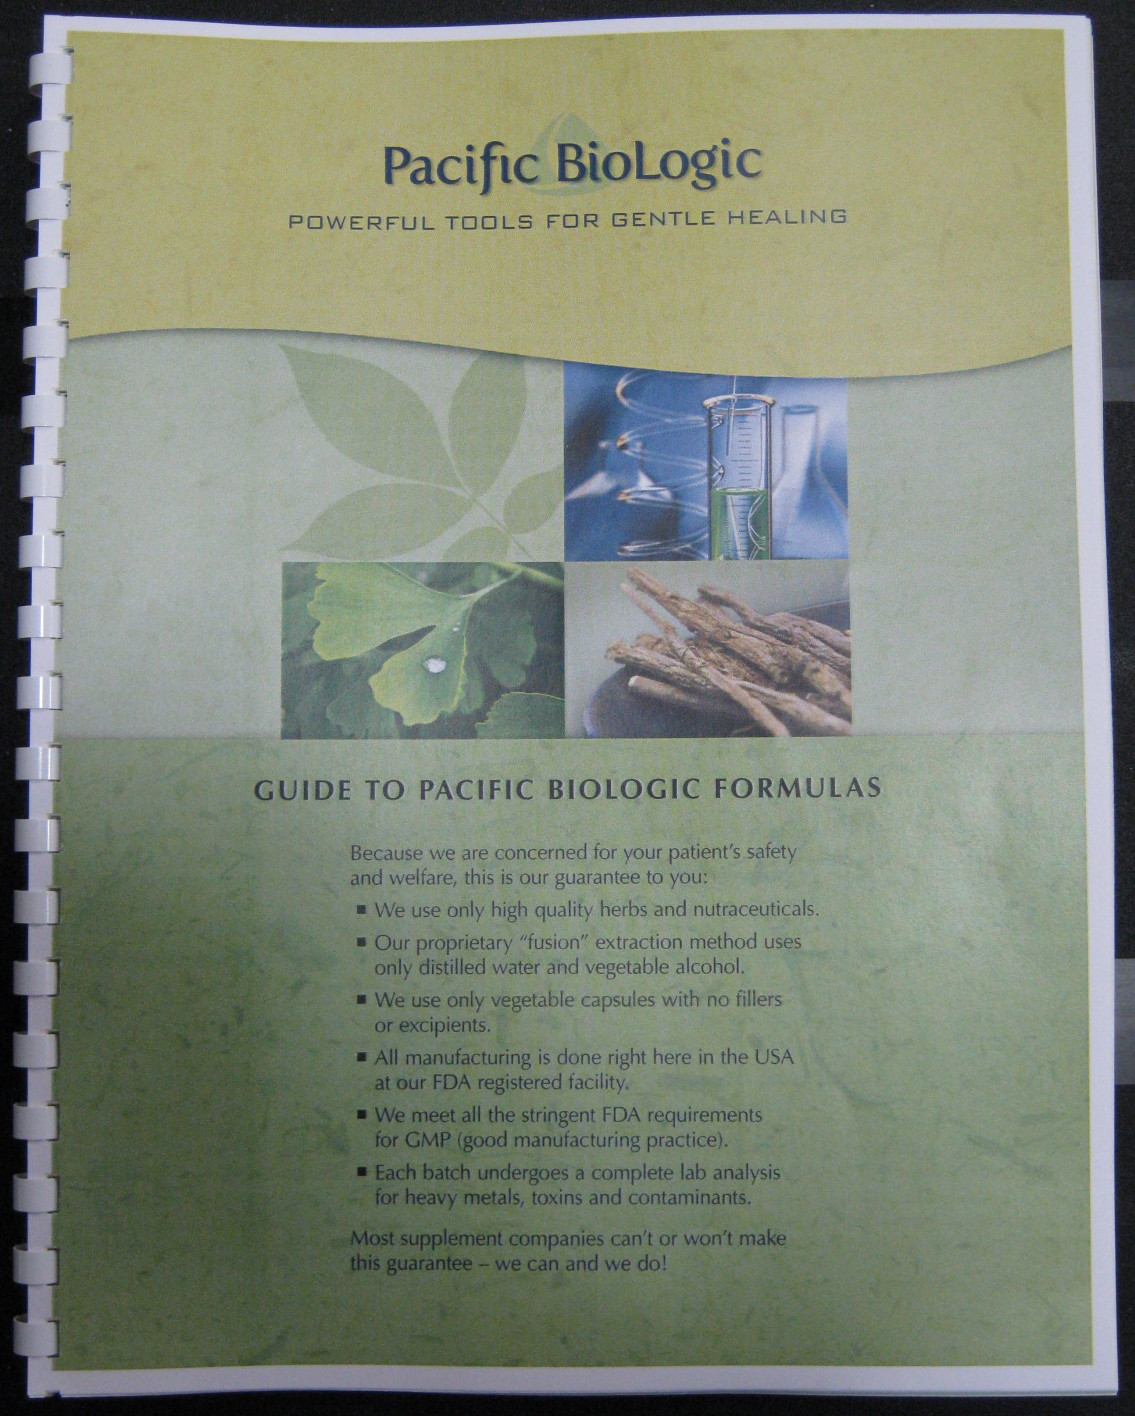 Guide to Pacific Biologic Formulas